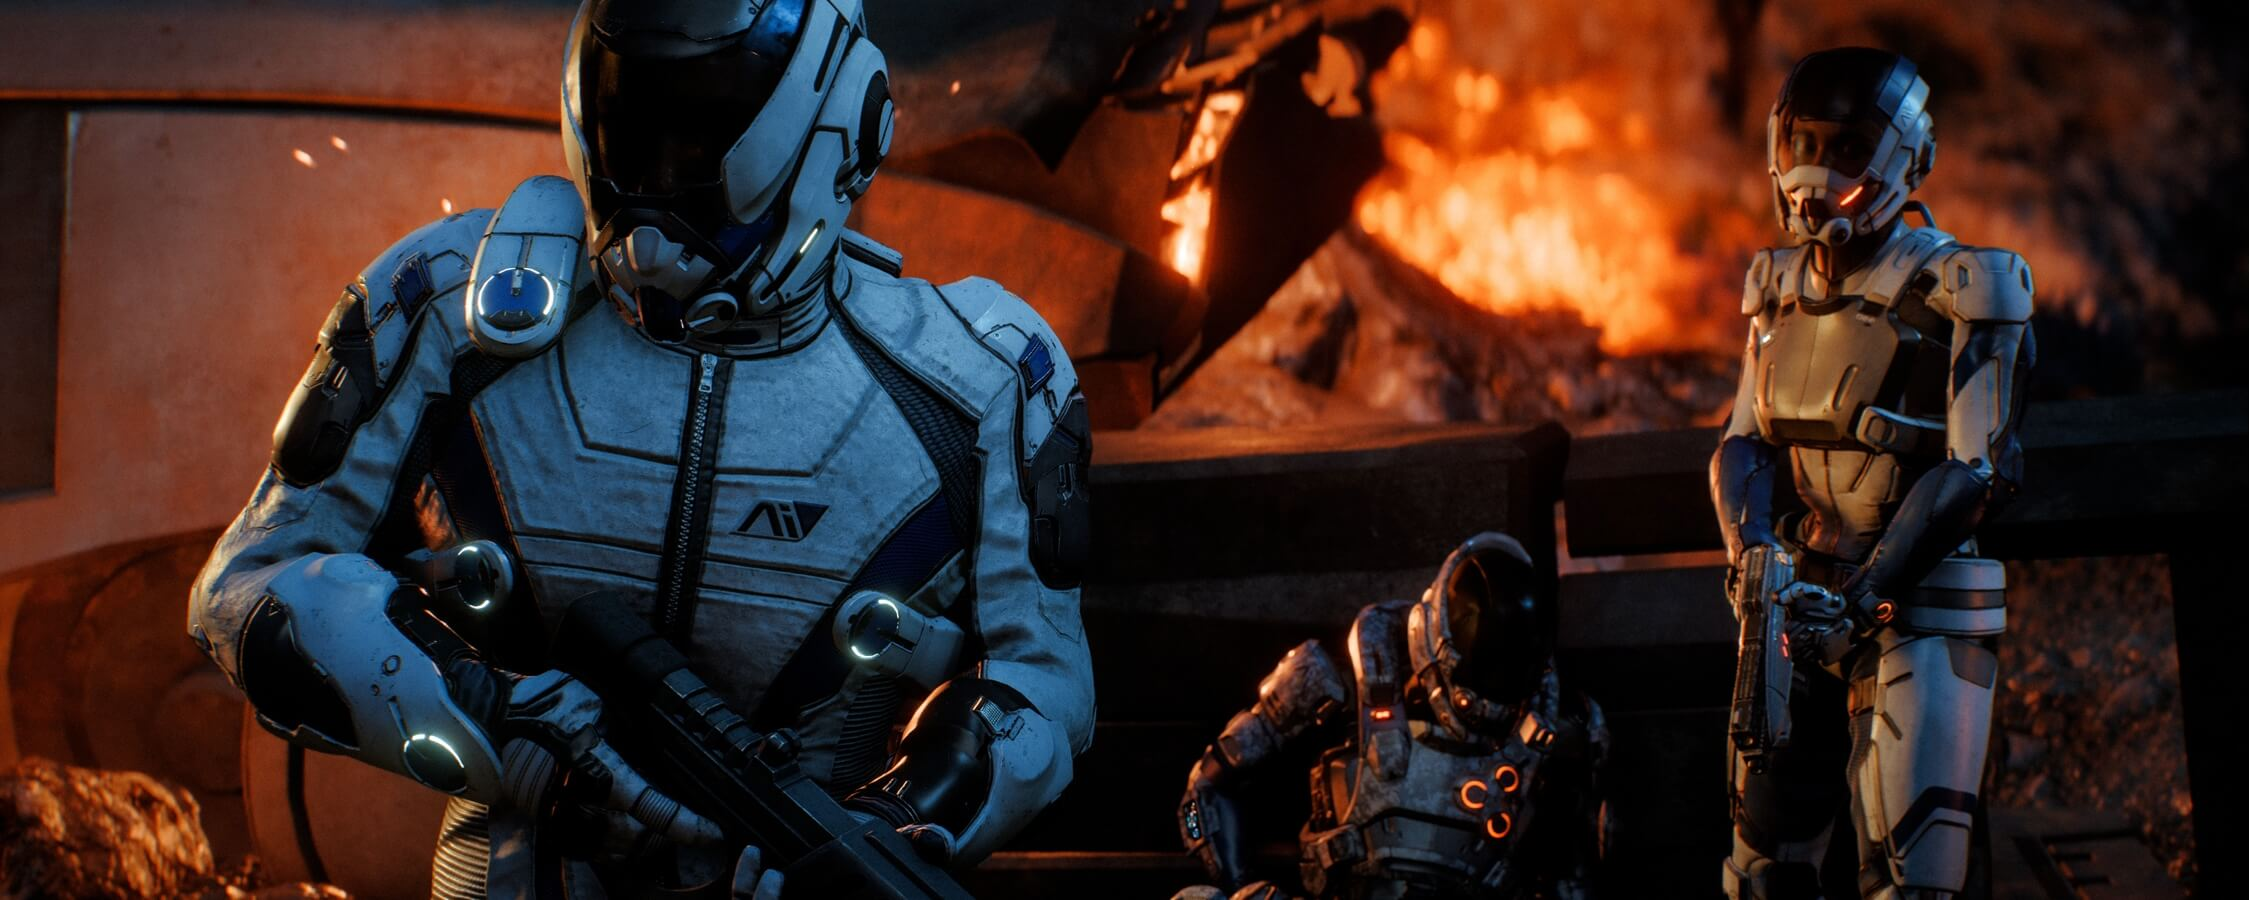 Mass Effect Andromeda Graphics Performance Tested Techspot